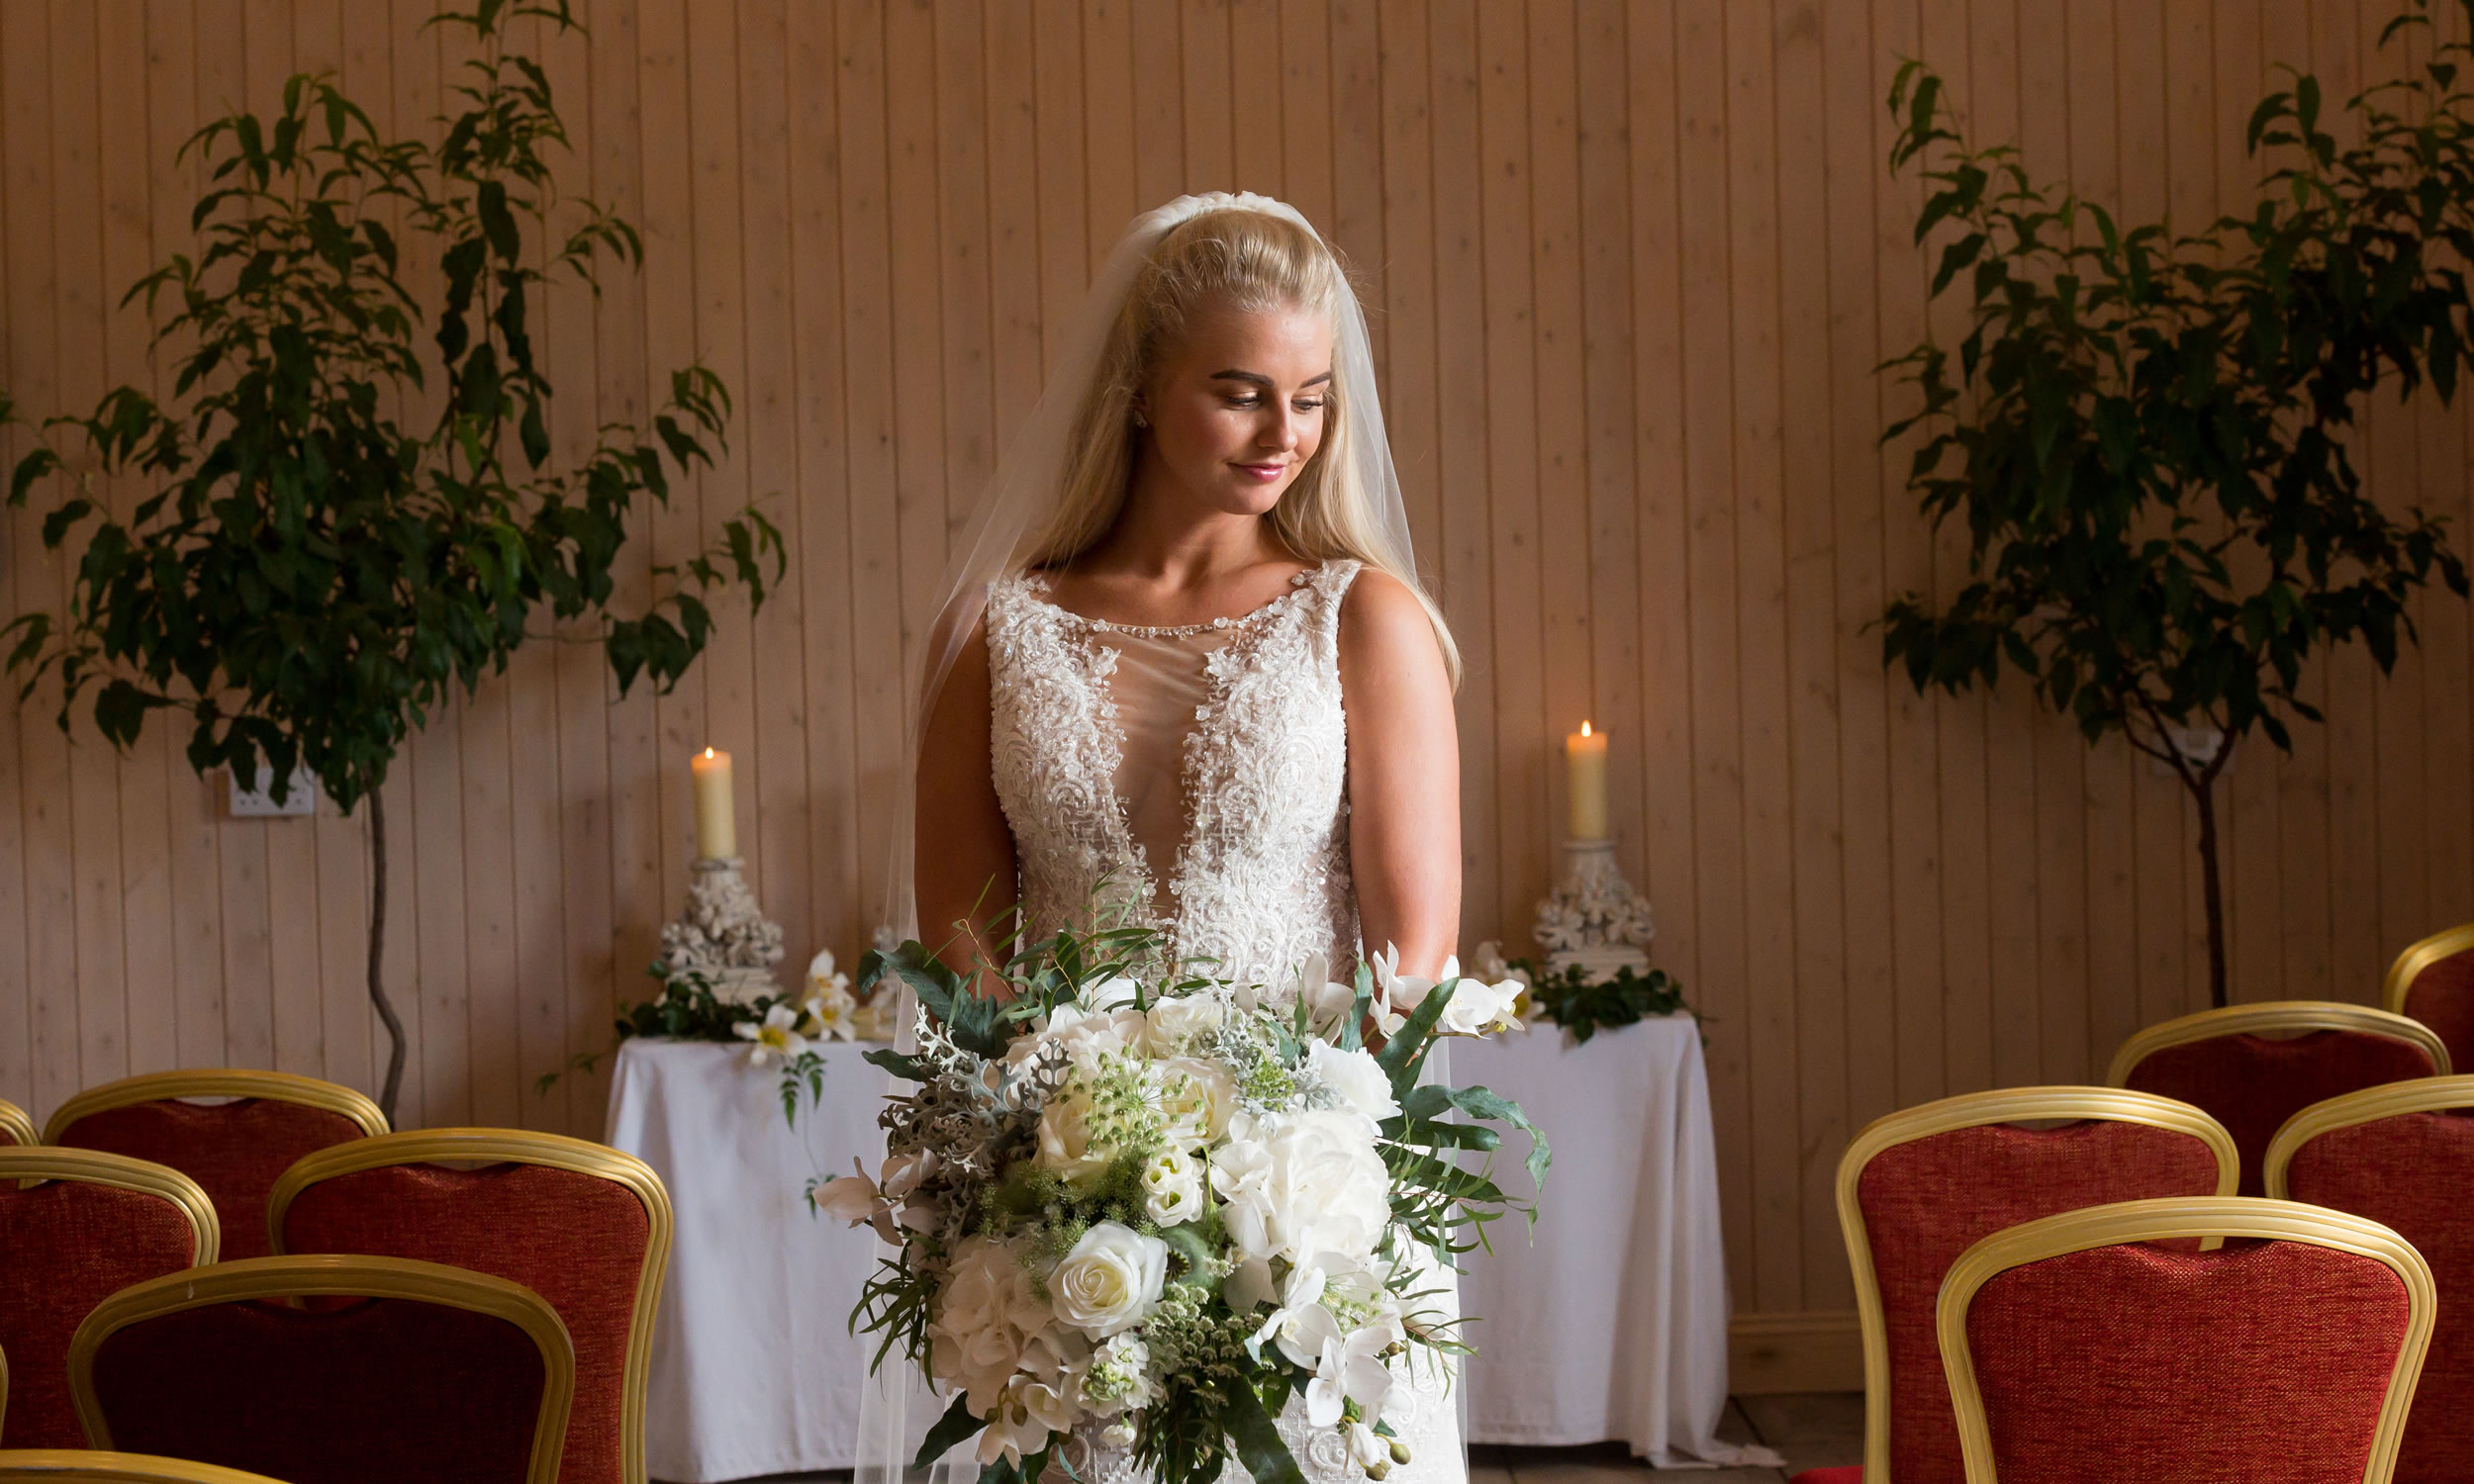 Dress available at Carols Bridal Boutique Carlisle